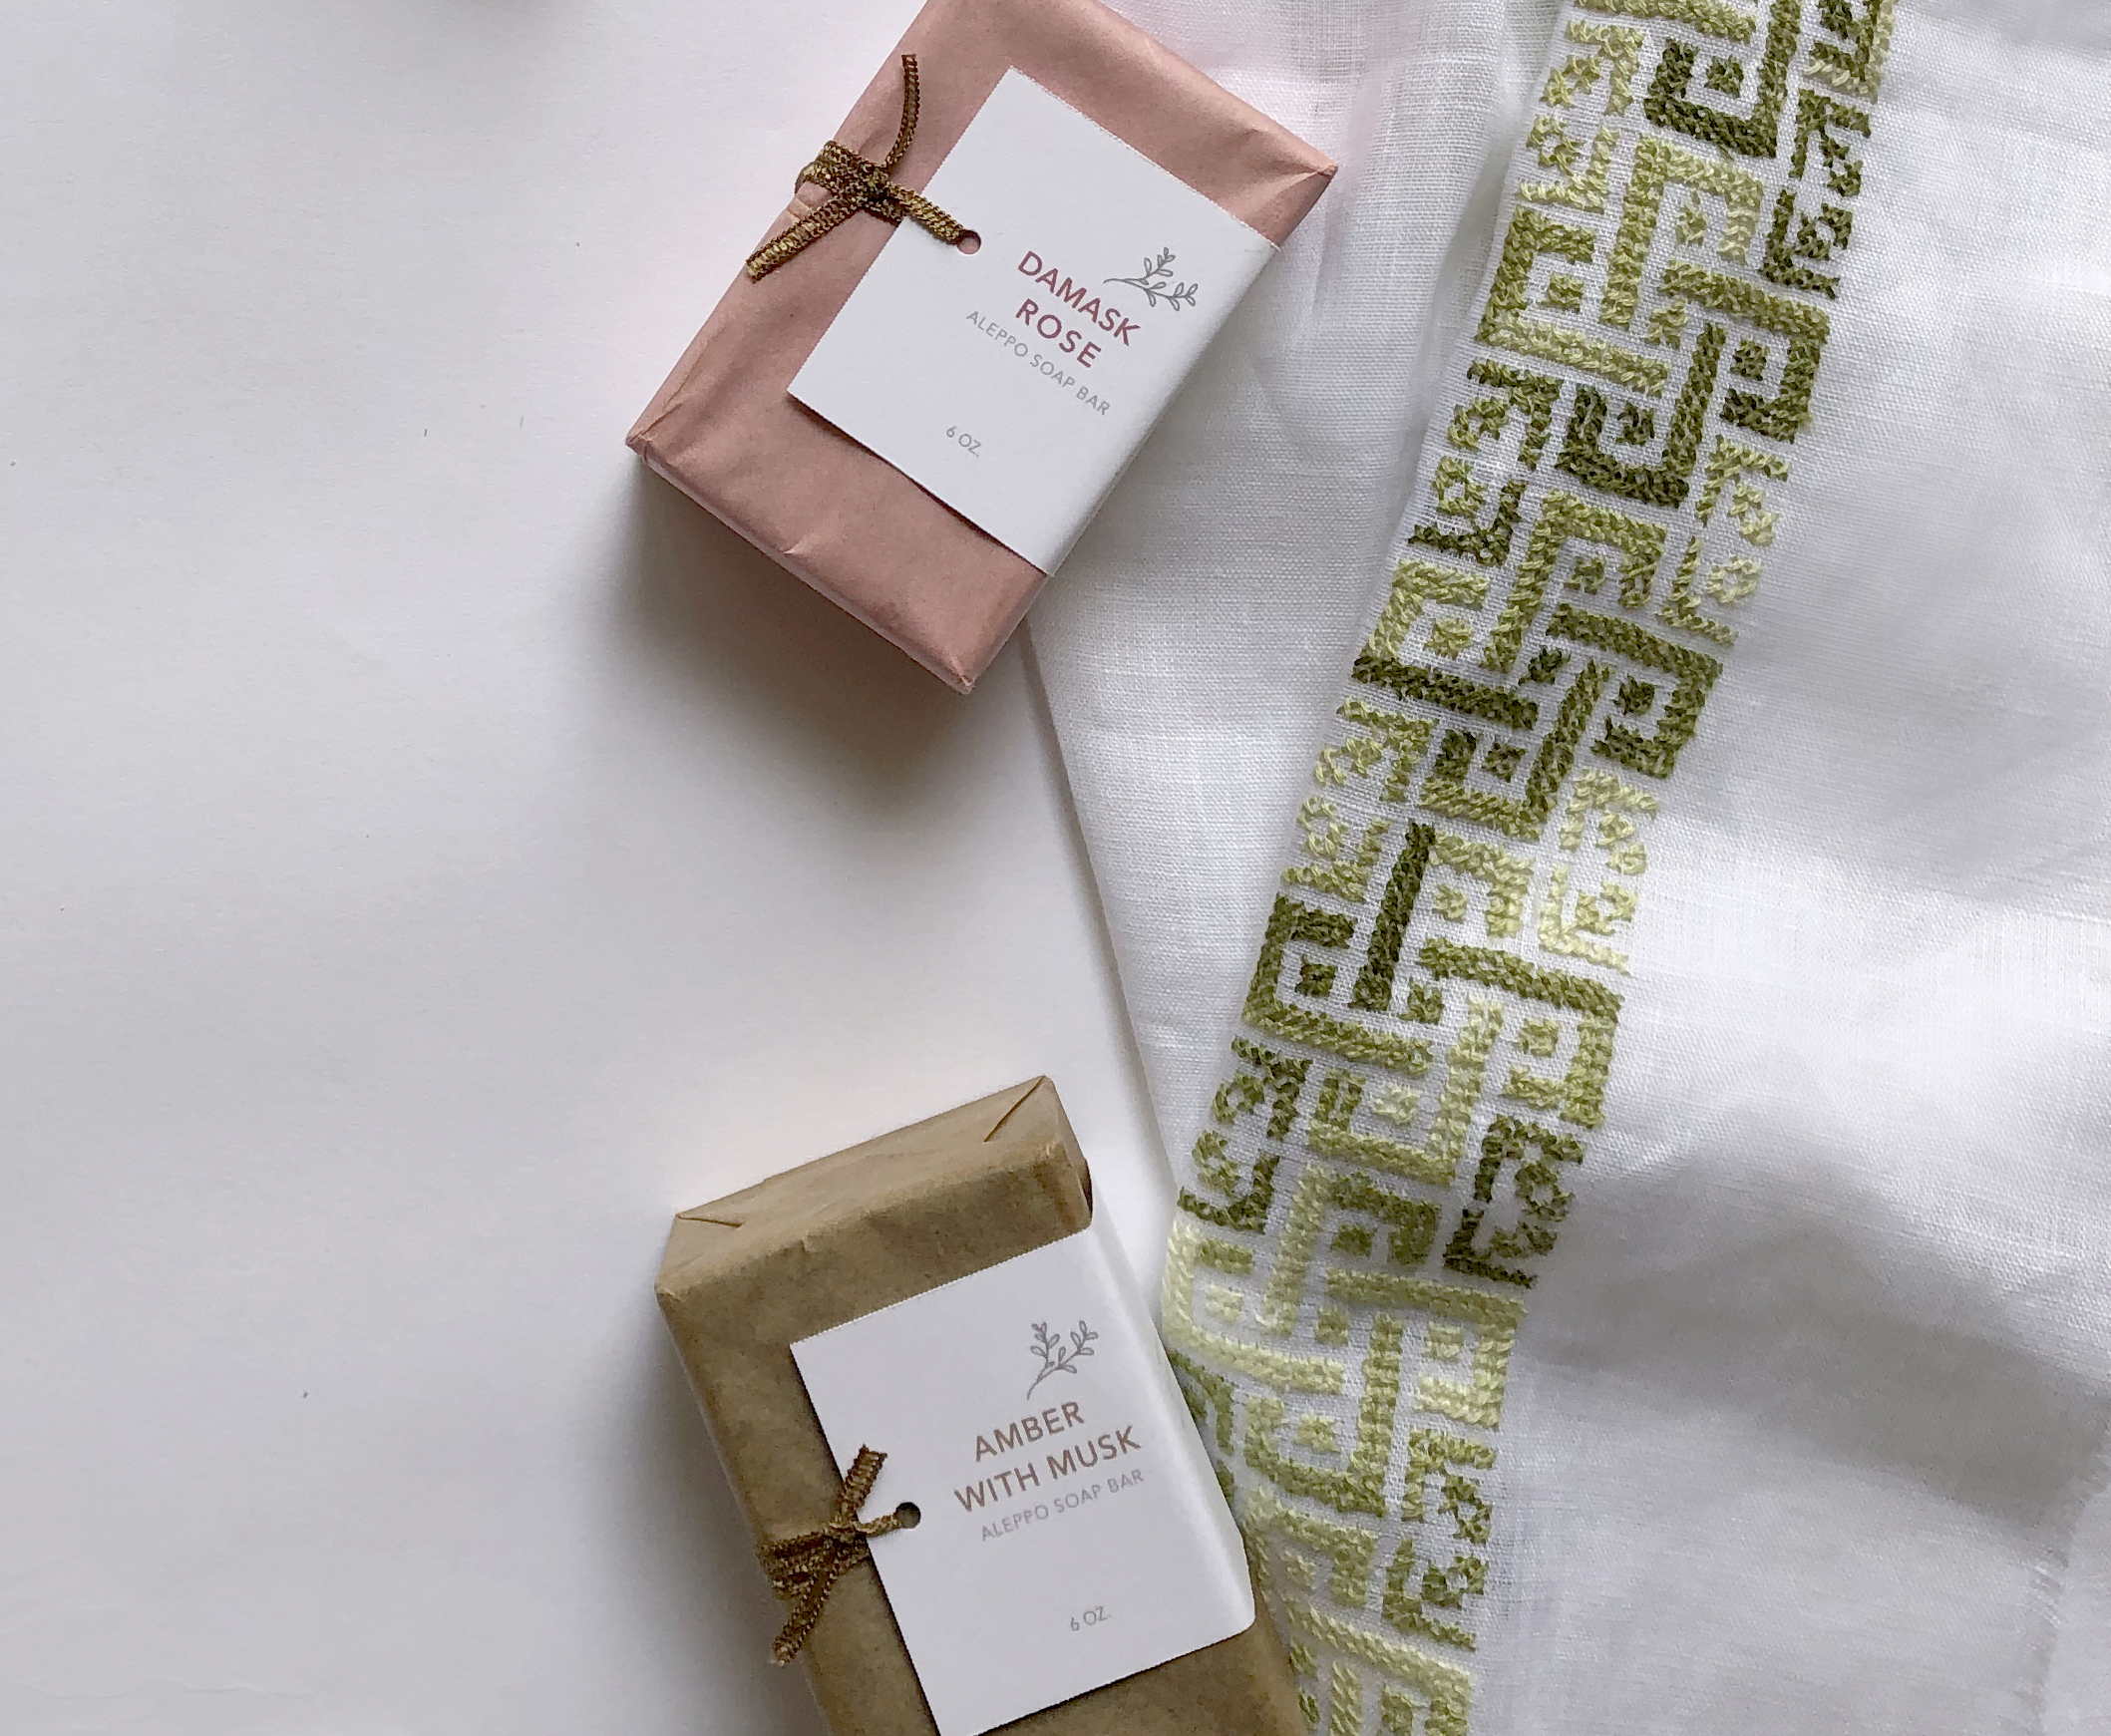 """Aleppo Laurel Soap - """"I purchased three different soap scents of these exquisite soaps as favors for a baby shower I hosted, and they were an absolute hit amongst my guests. Aside from their amazing quality as soap bars, they emit the most divine aroma that can fill any room. Thier clean and crisp fragrance always triggers nostalgia for being in the Middle East.""""-DIMA H., LAGUNA NIGUEL, CA"""